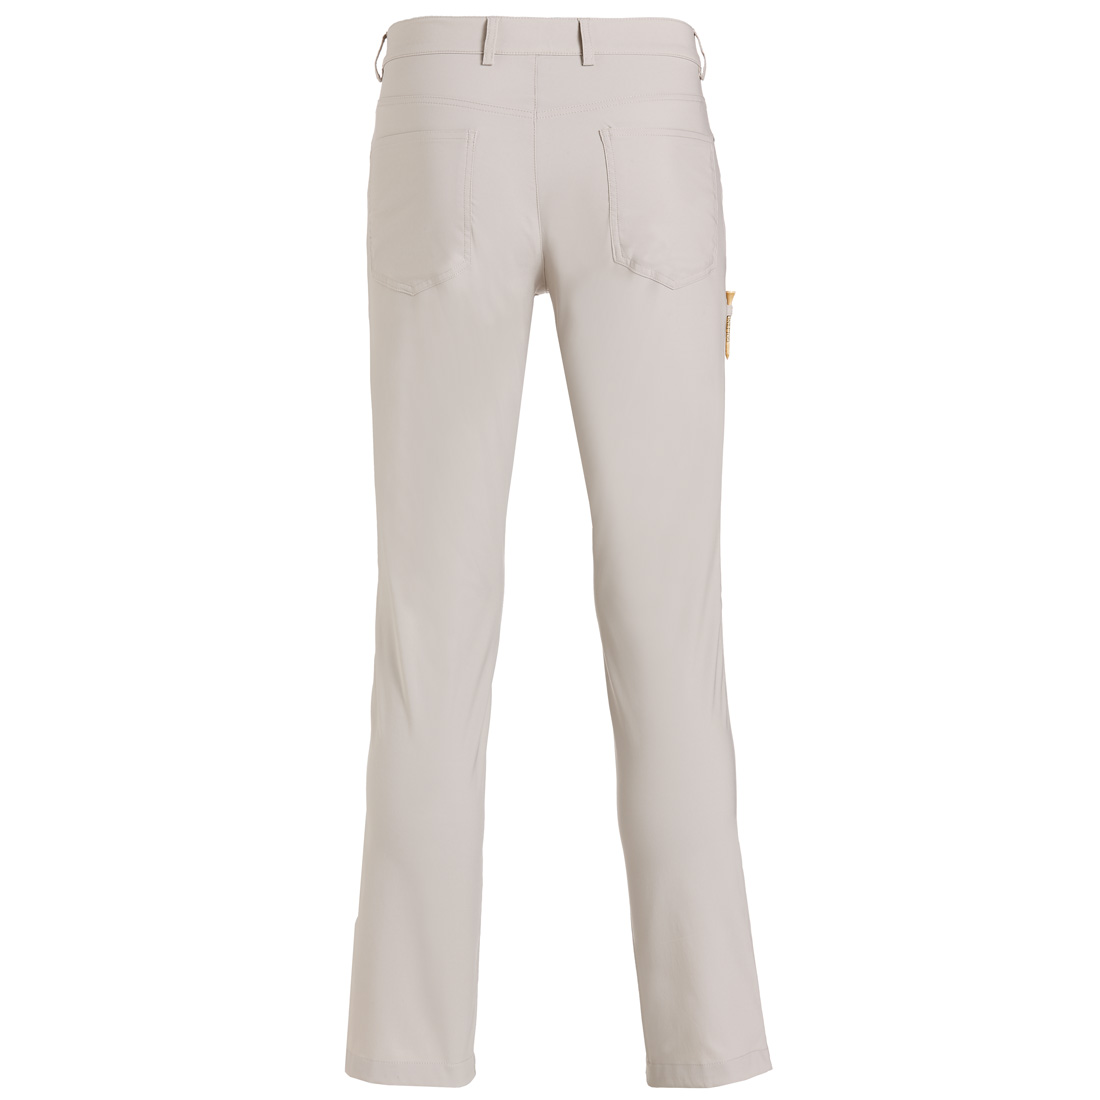 5-Pocket Stretch-Performance Golfhose in Slim Fit mit UV-Schutz